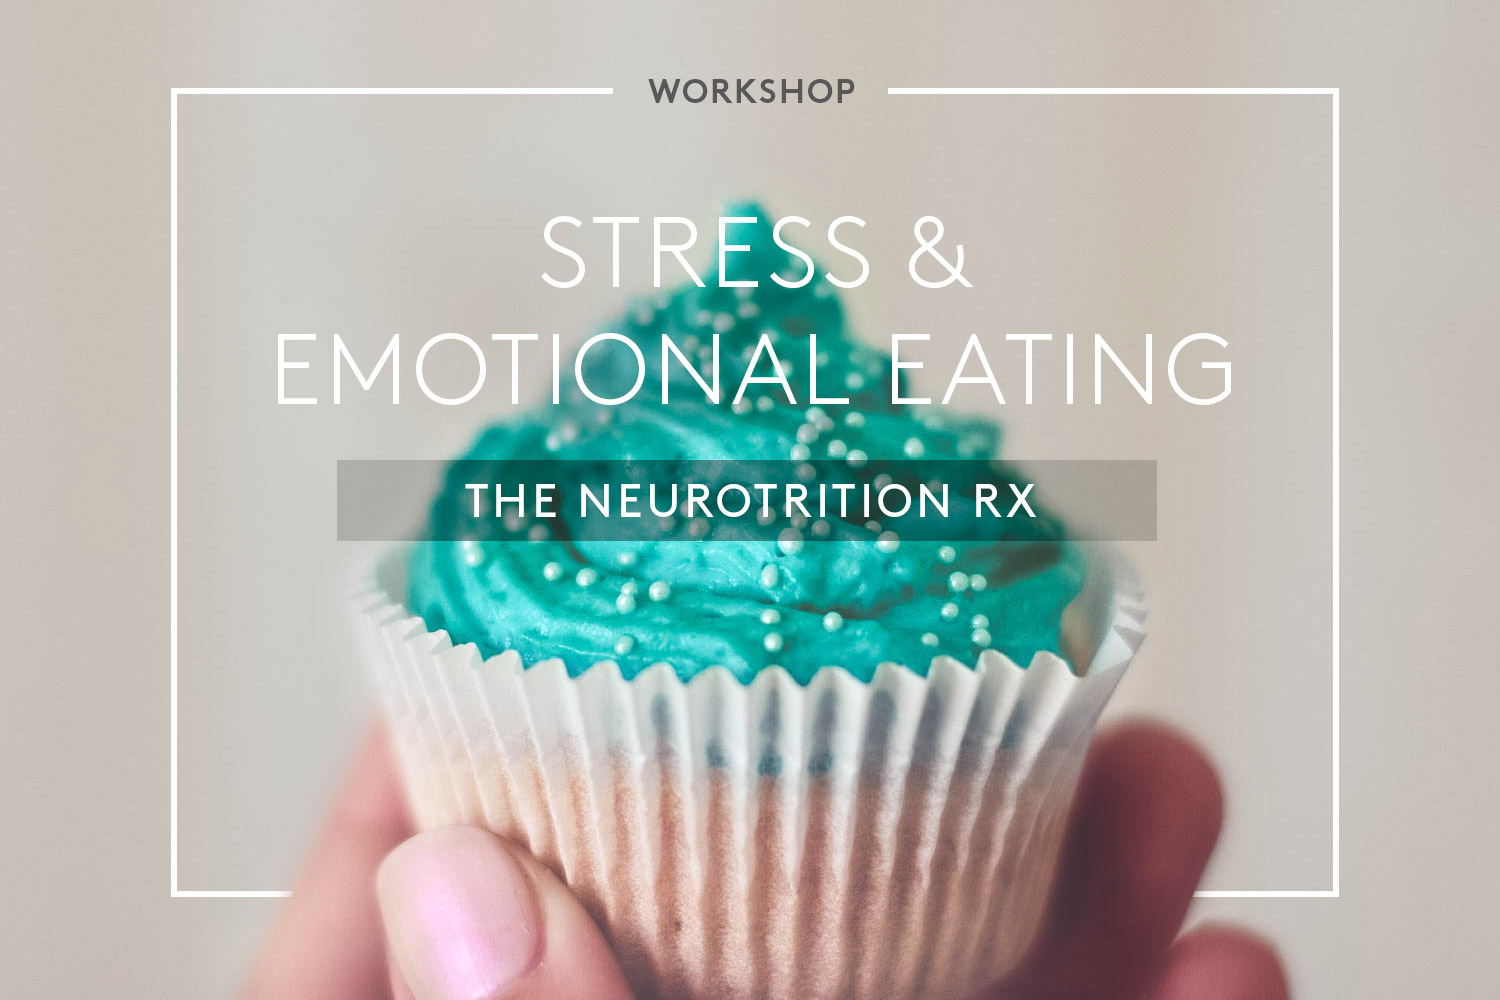 Stress & Emotional Eating Workshop